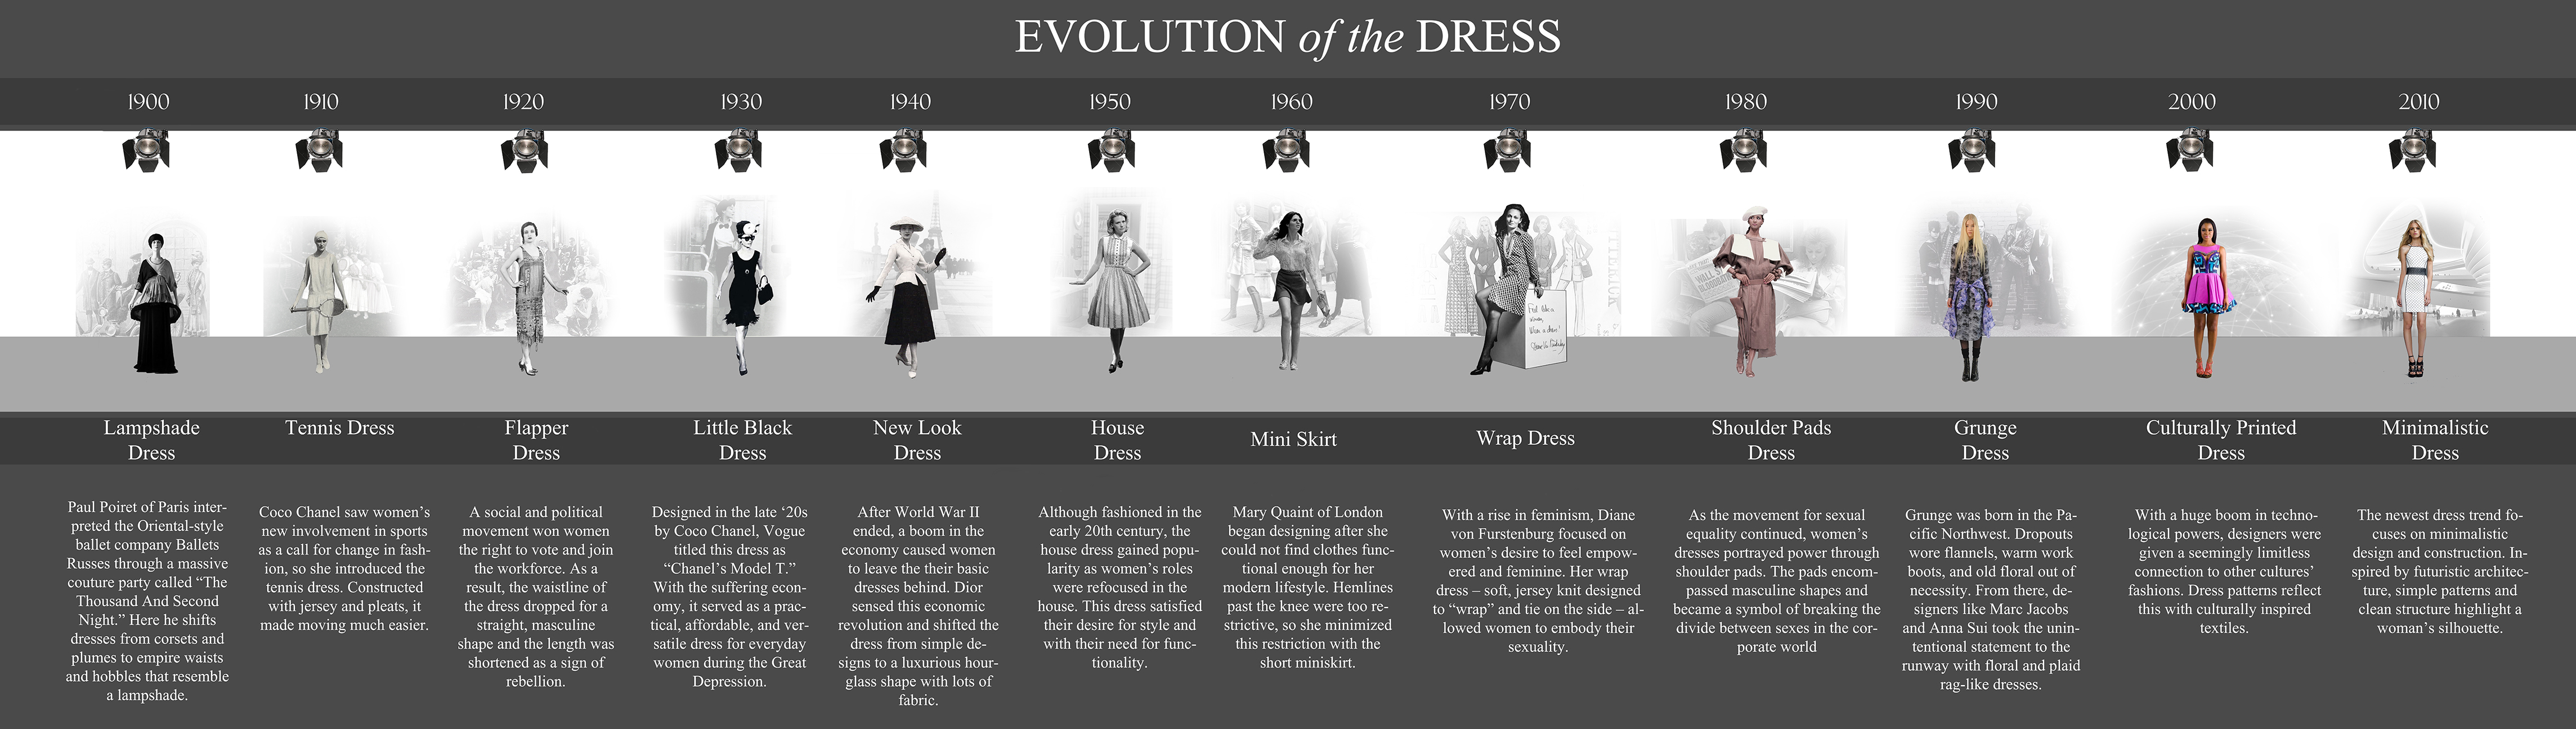 Evolution of the Dress - an infographic by Roberto Leon and Marissa Monett